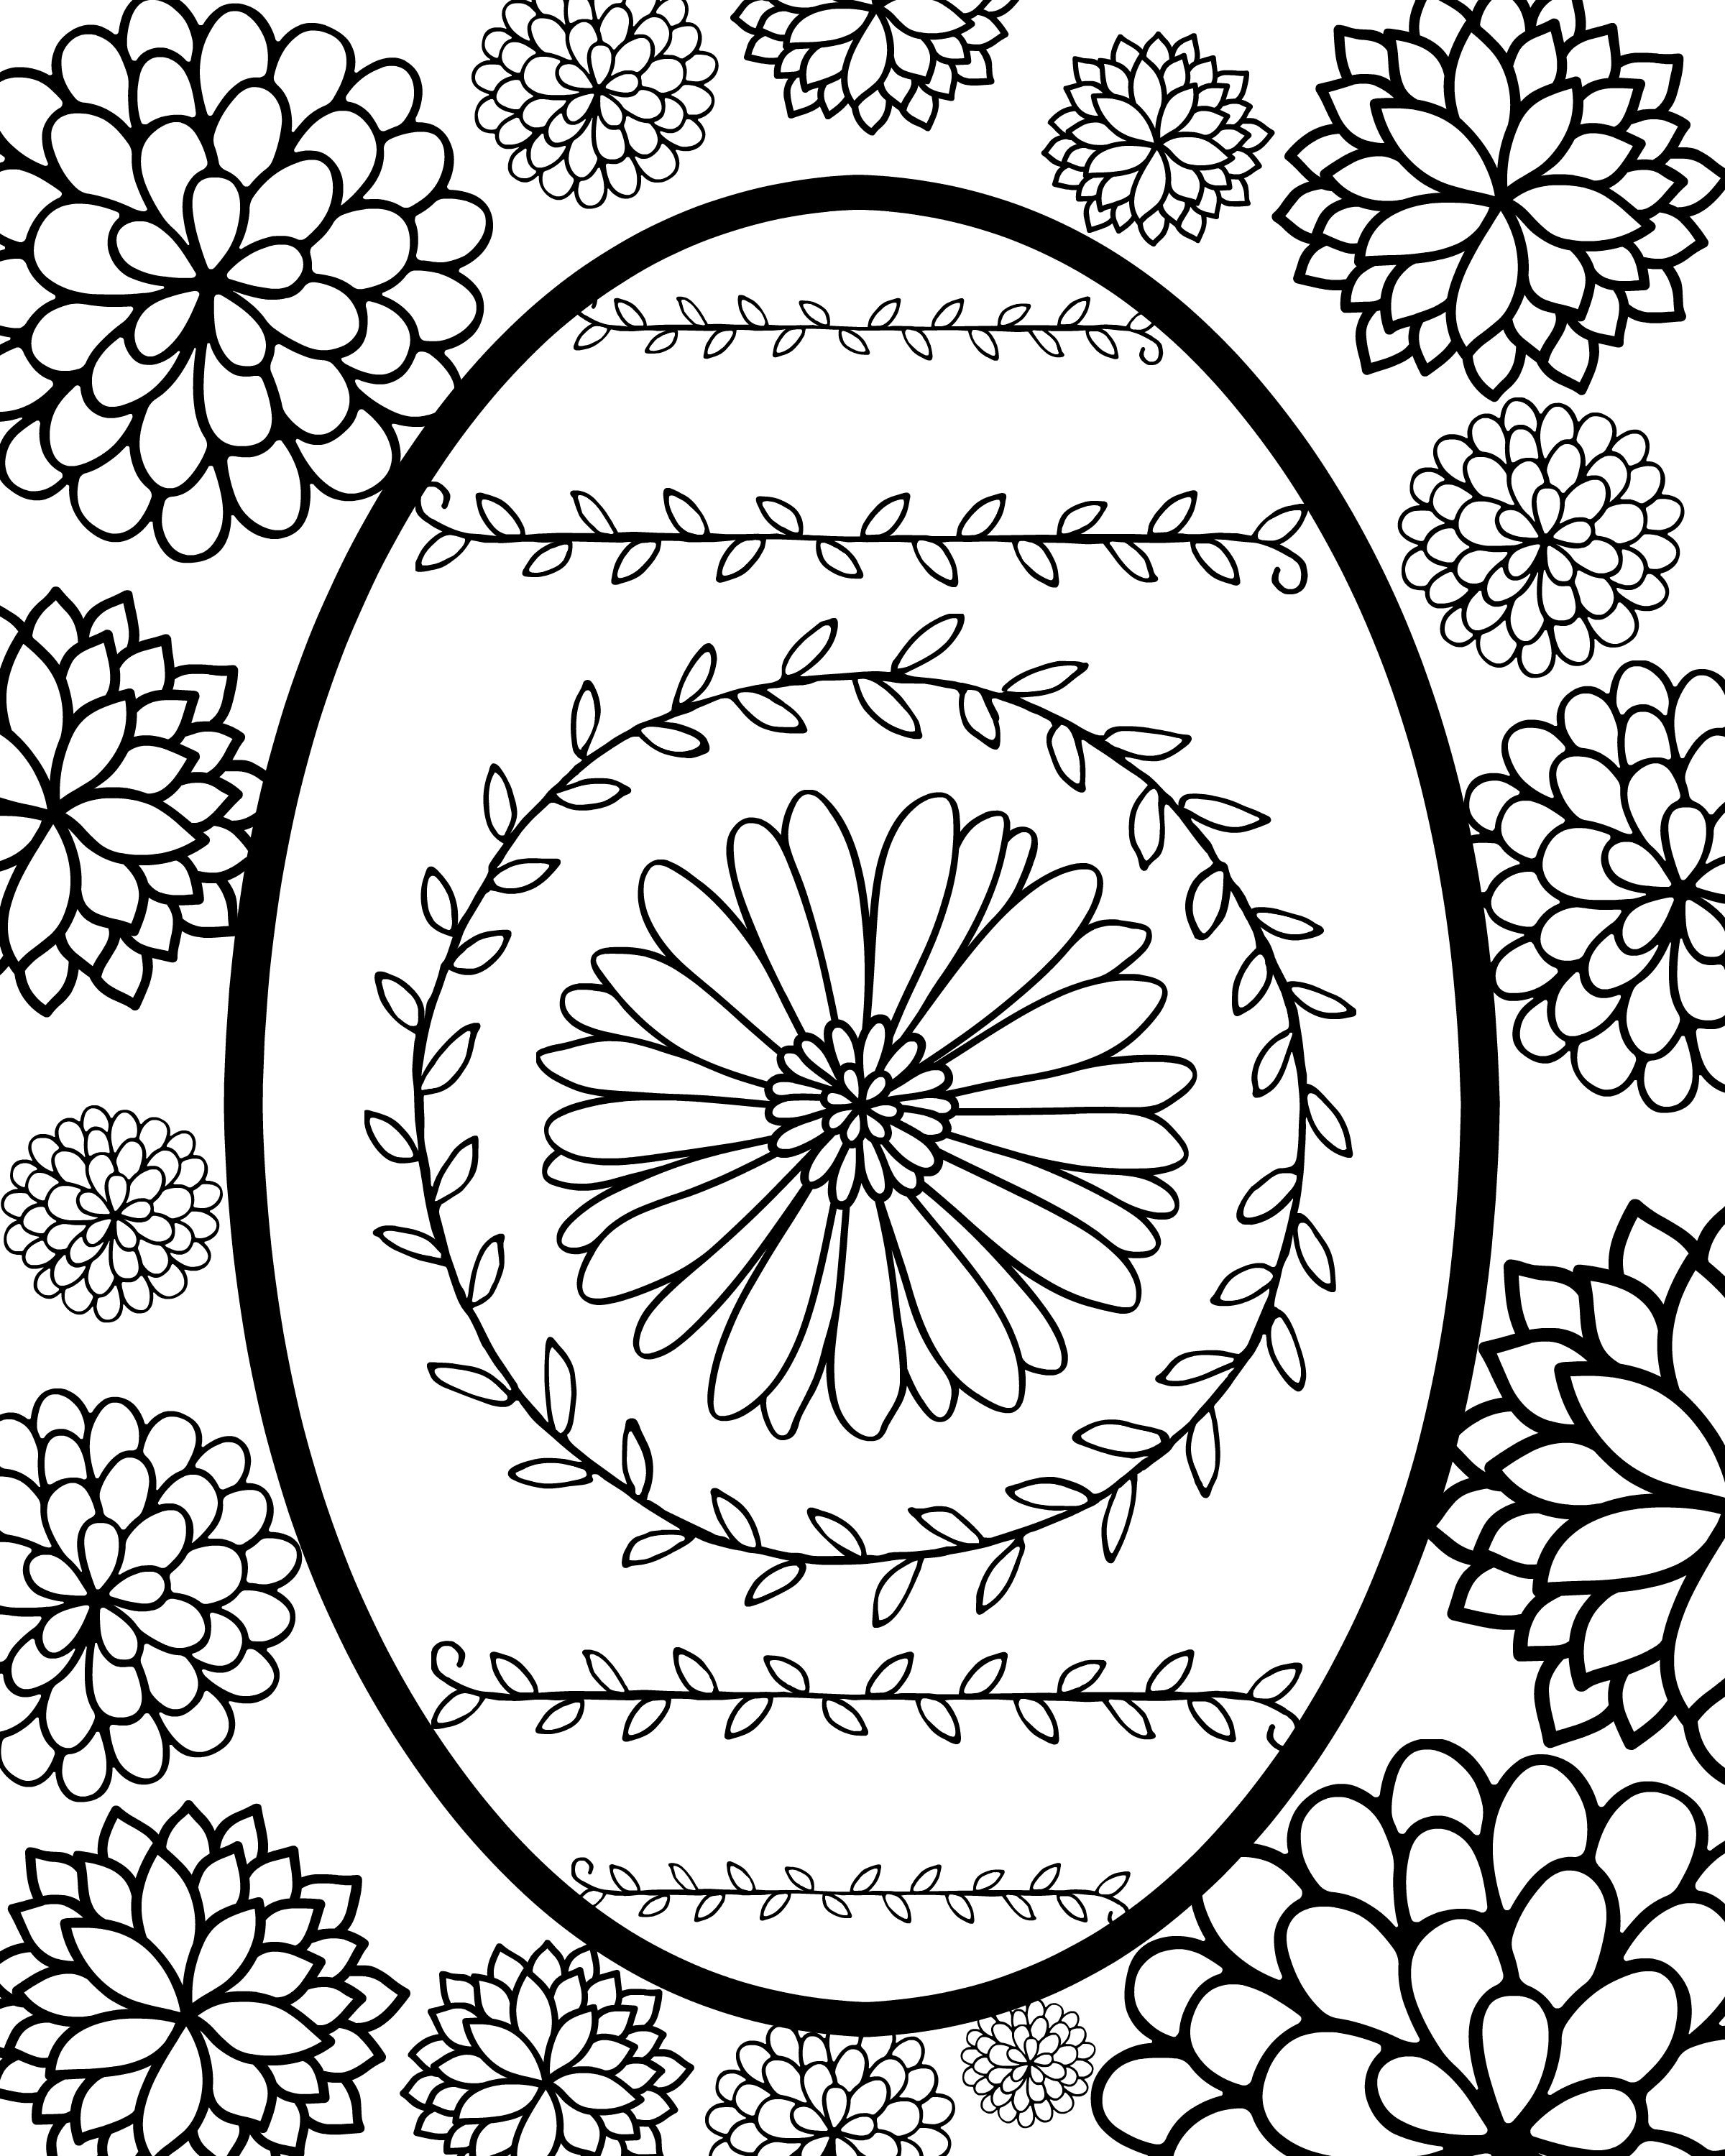 egg coloring page faberge egg style easter egg printable coloring page egg coloring page